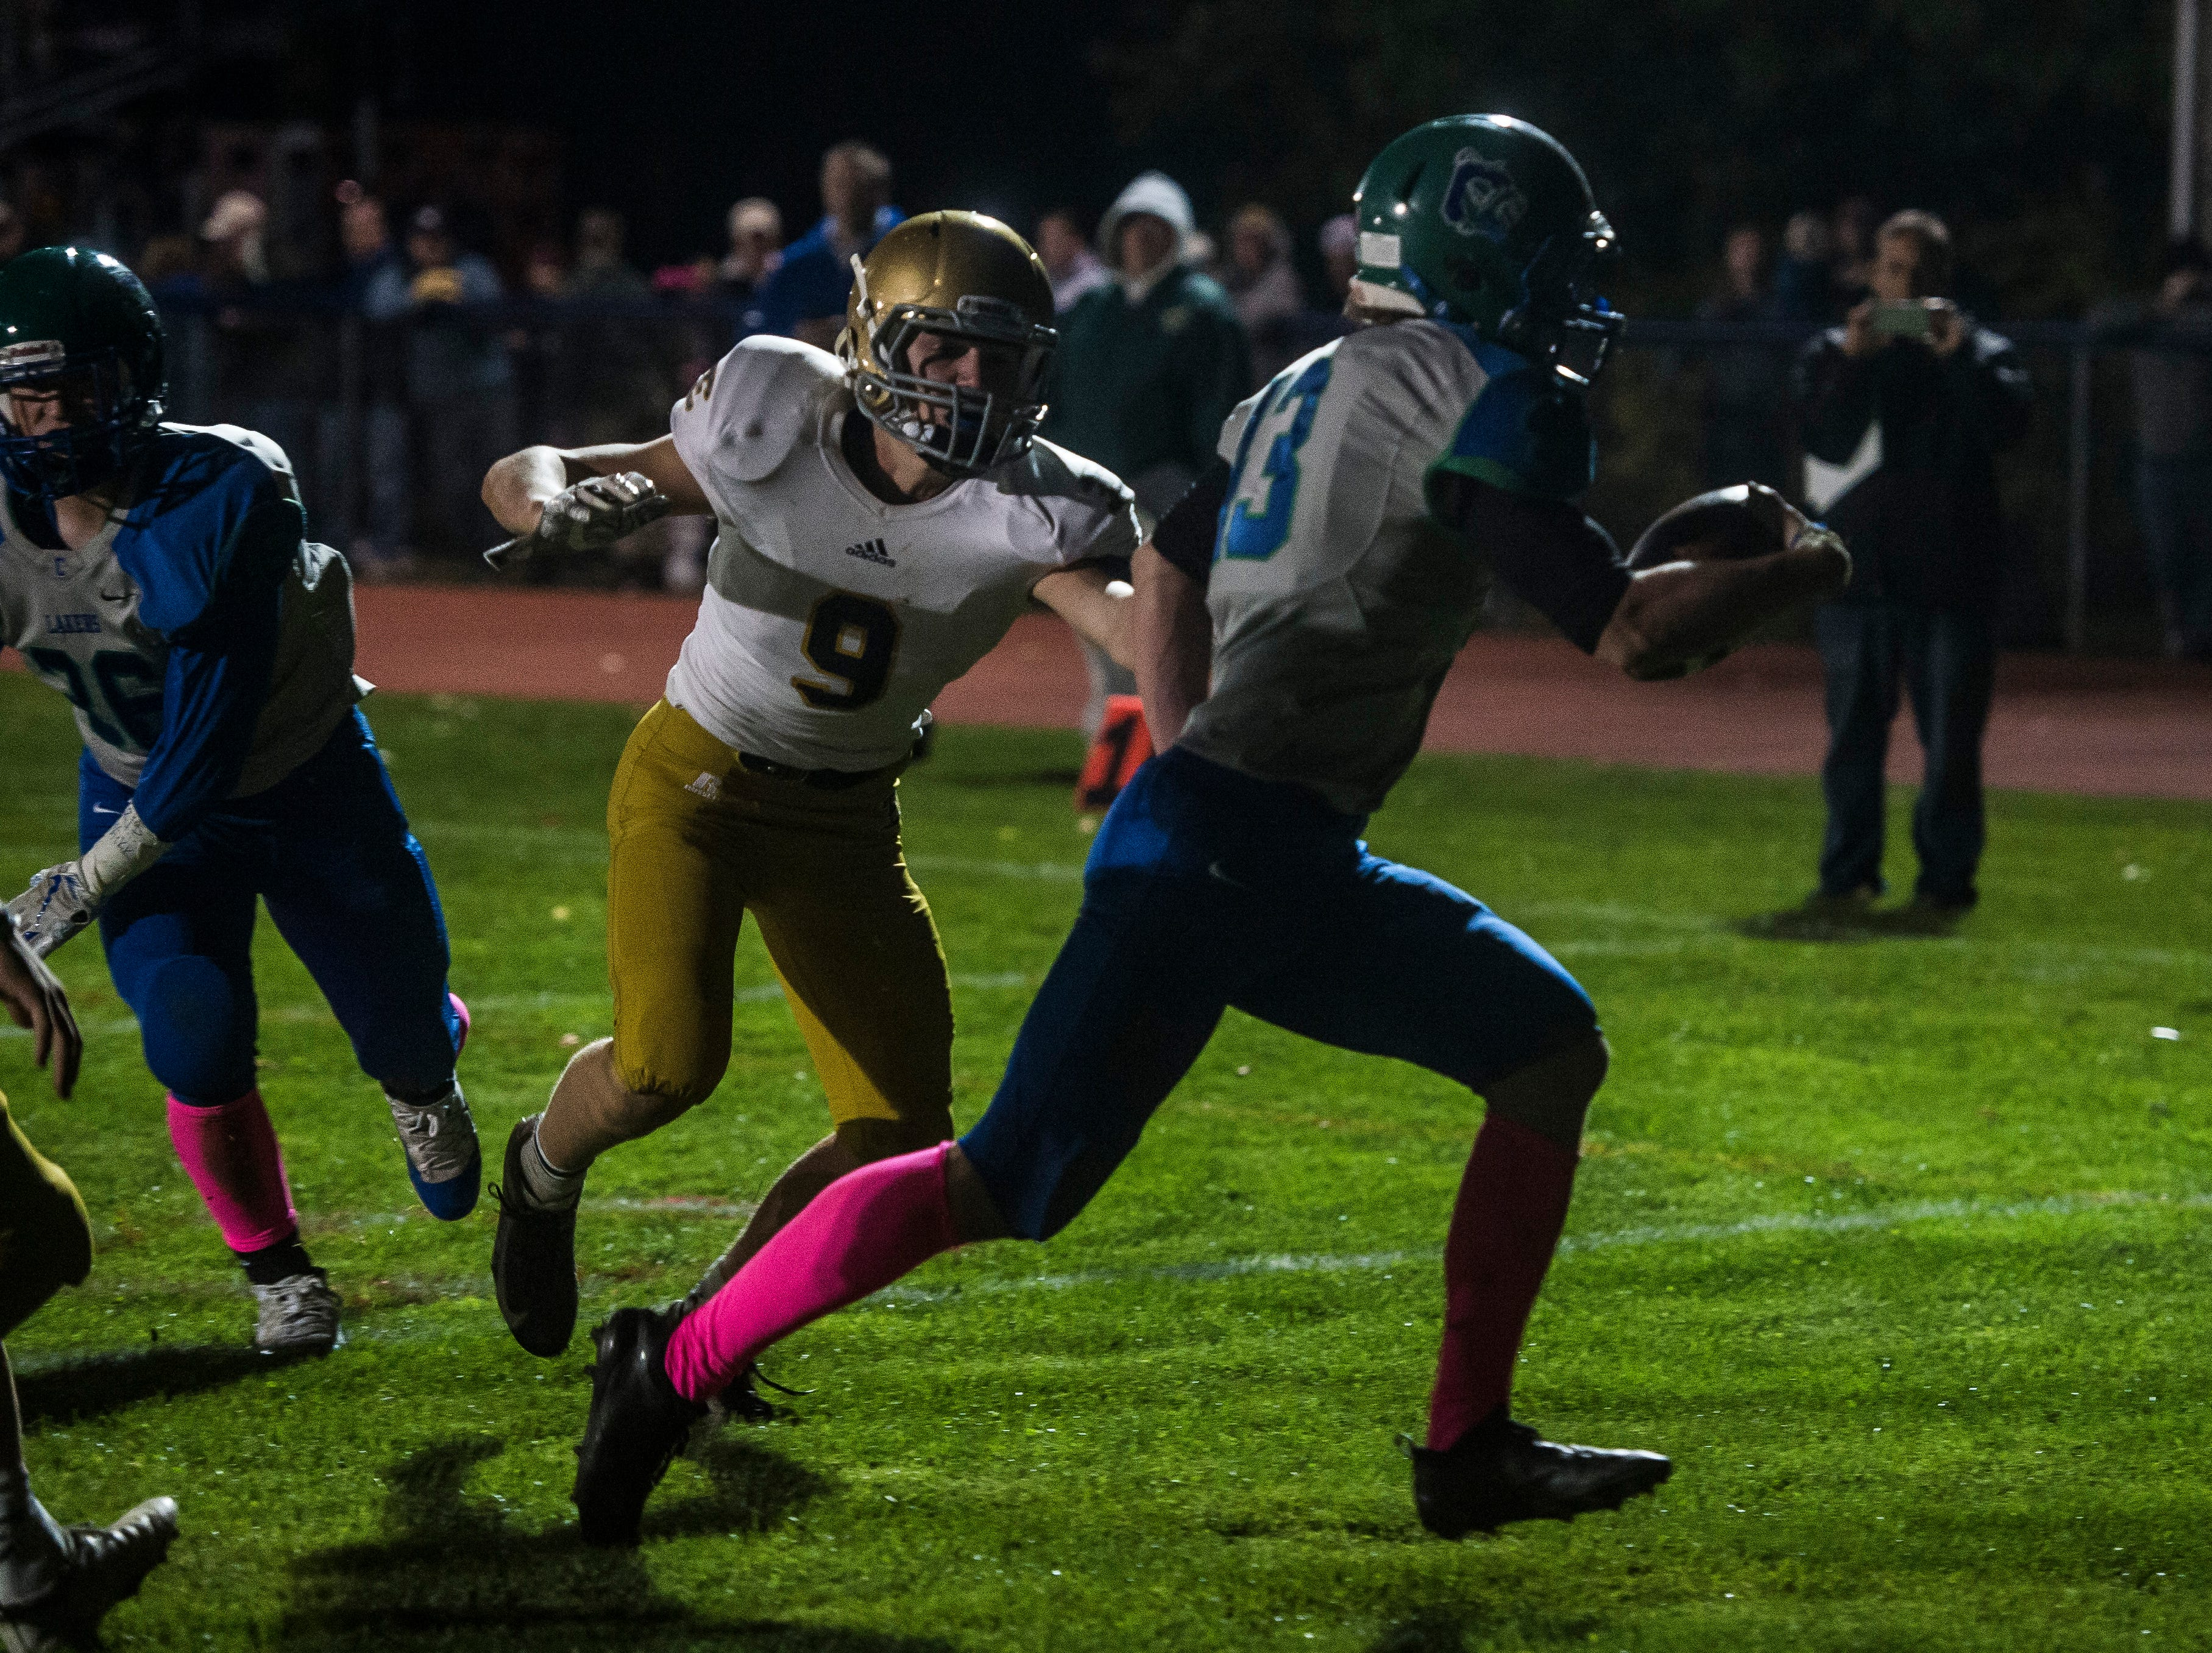 Colchester #43 Max Anderson cruises into the end zone for the touchdown past Essex #9 Chris Davis during their football game Friday night, Oct. 5, 2018, at Colchester High School. The Lakers won, 28-7.